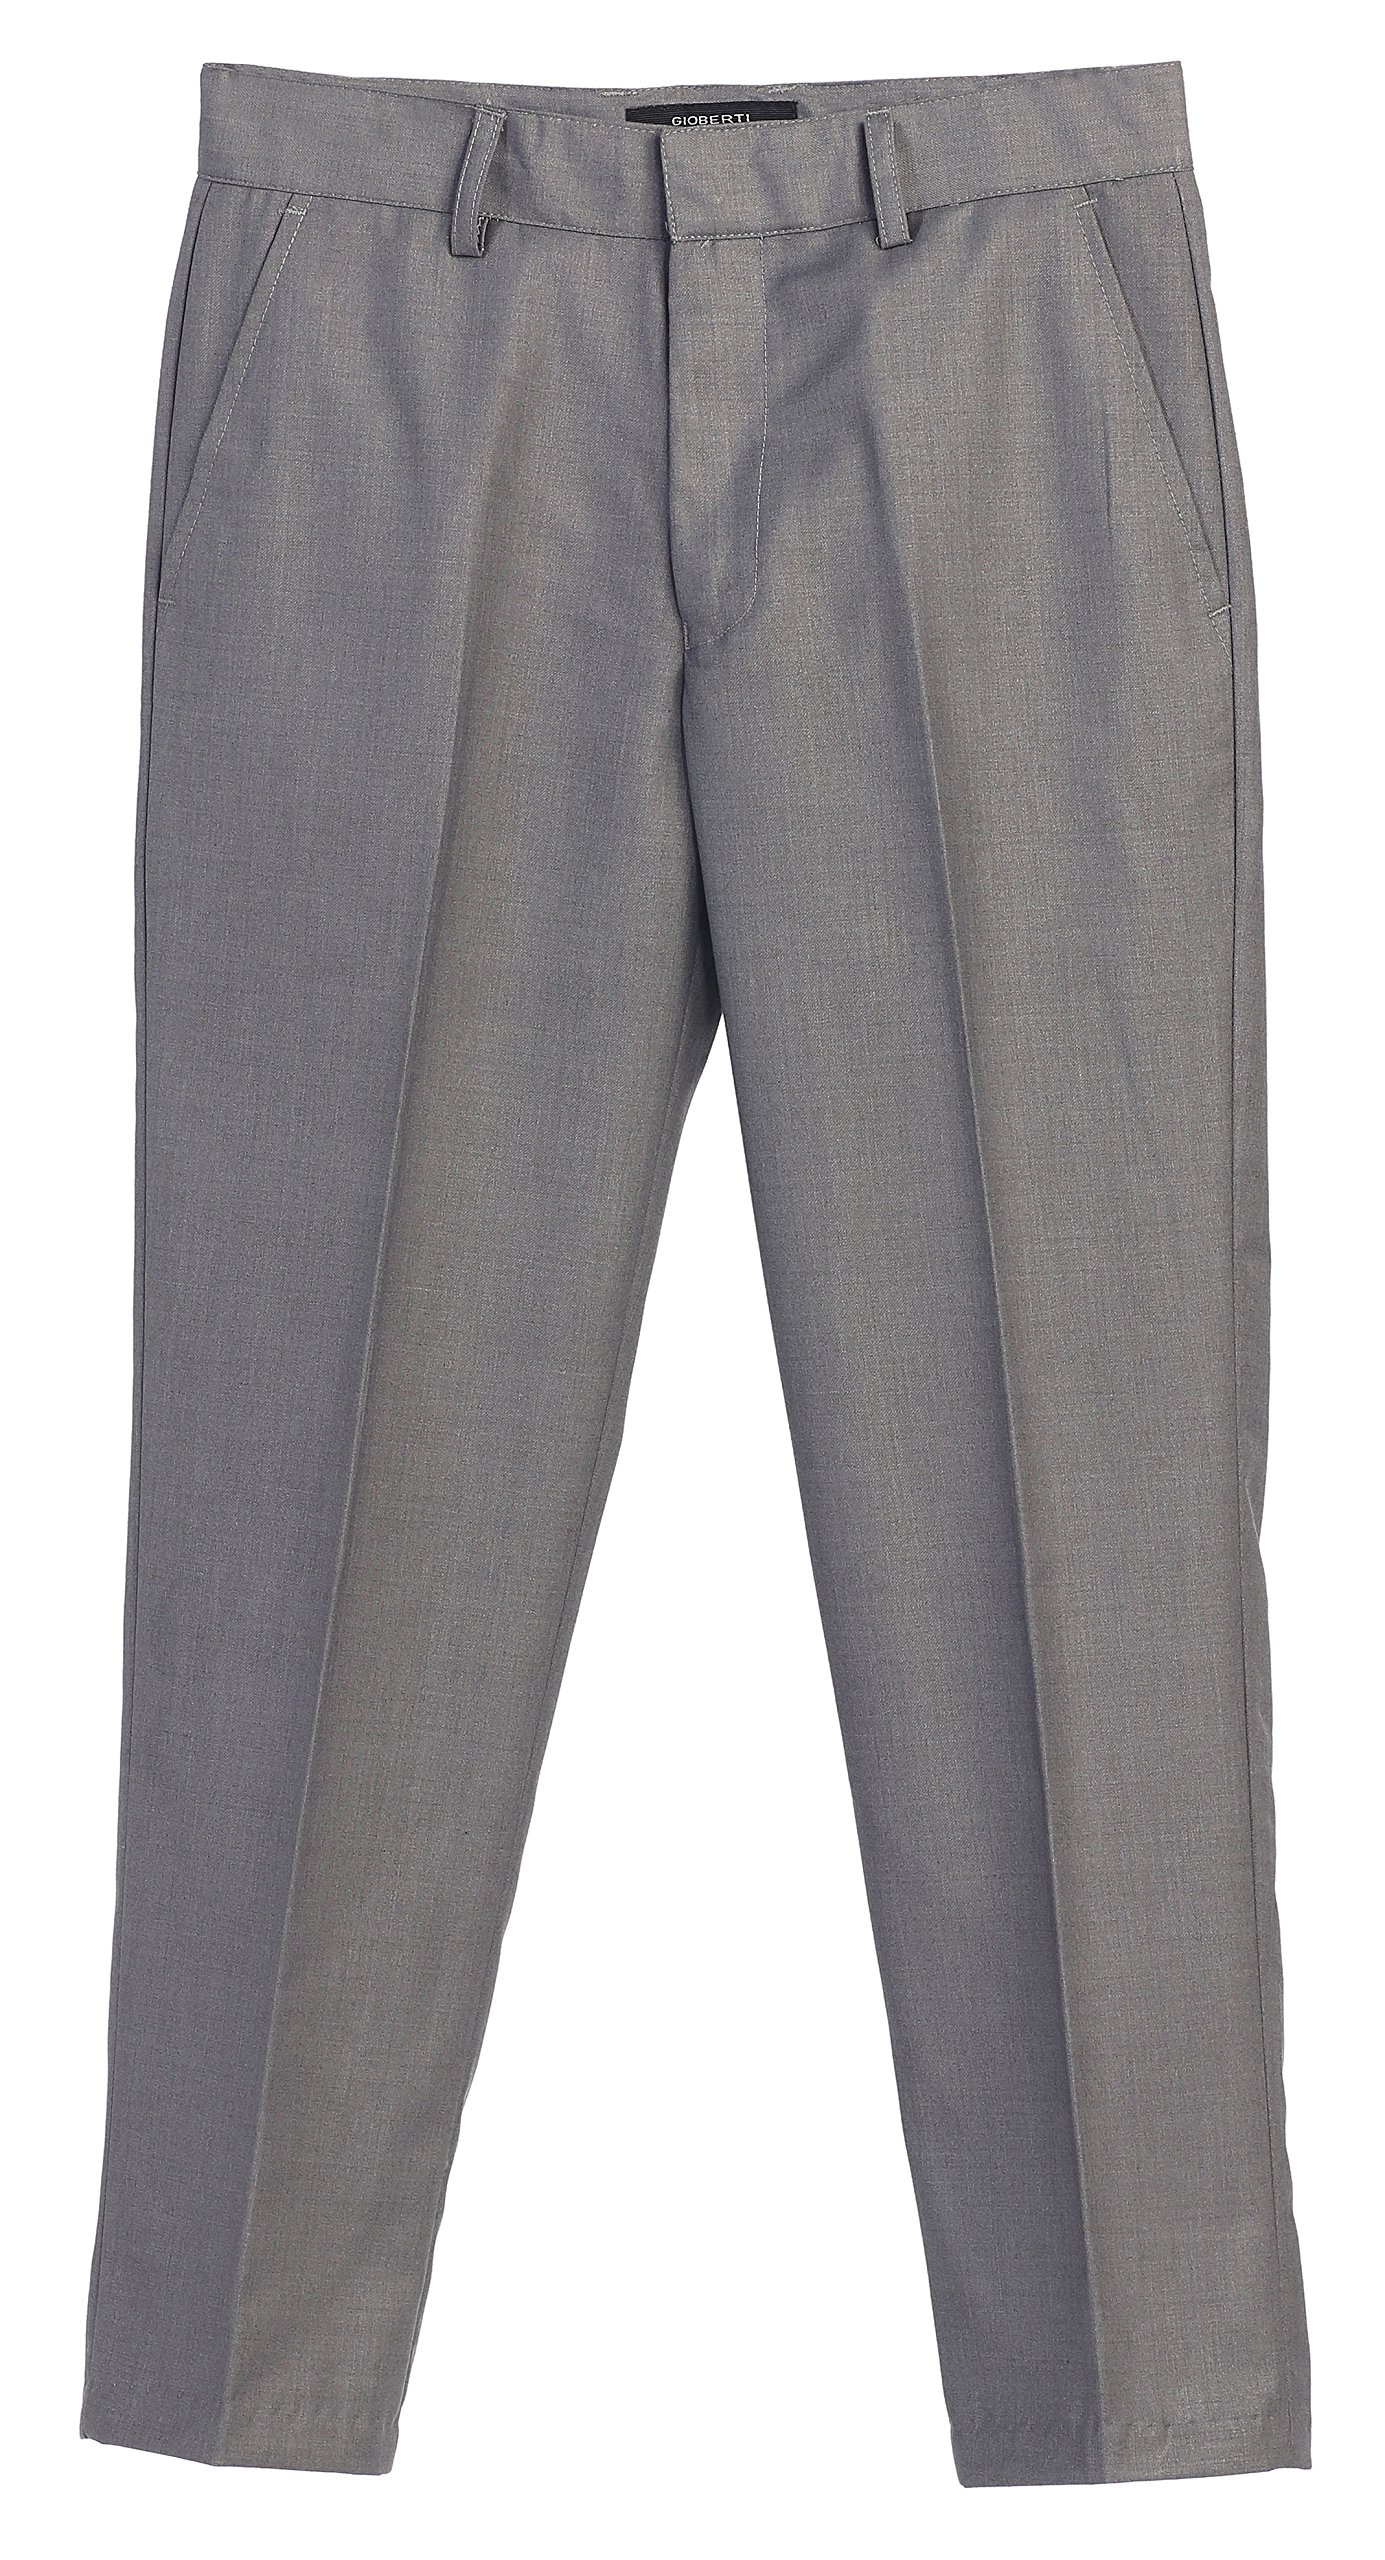 2 Piece Kids Boys Gray Vest and Pants Formal Set, 4T by Gioberti (Image #2)